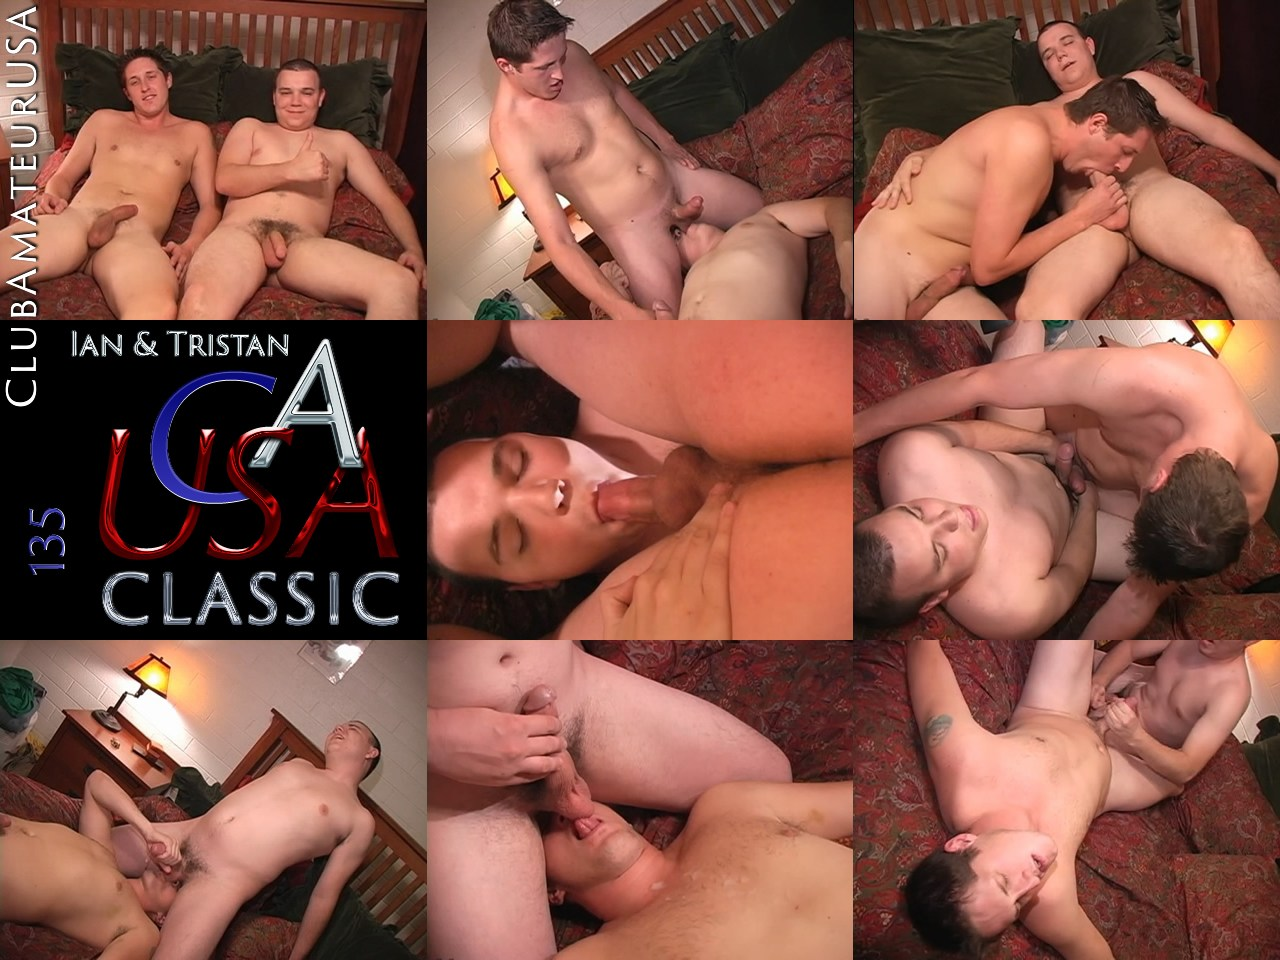 Download or Stream Classic CAUSA 135 Tristan and Ian - Click Here Now